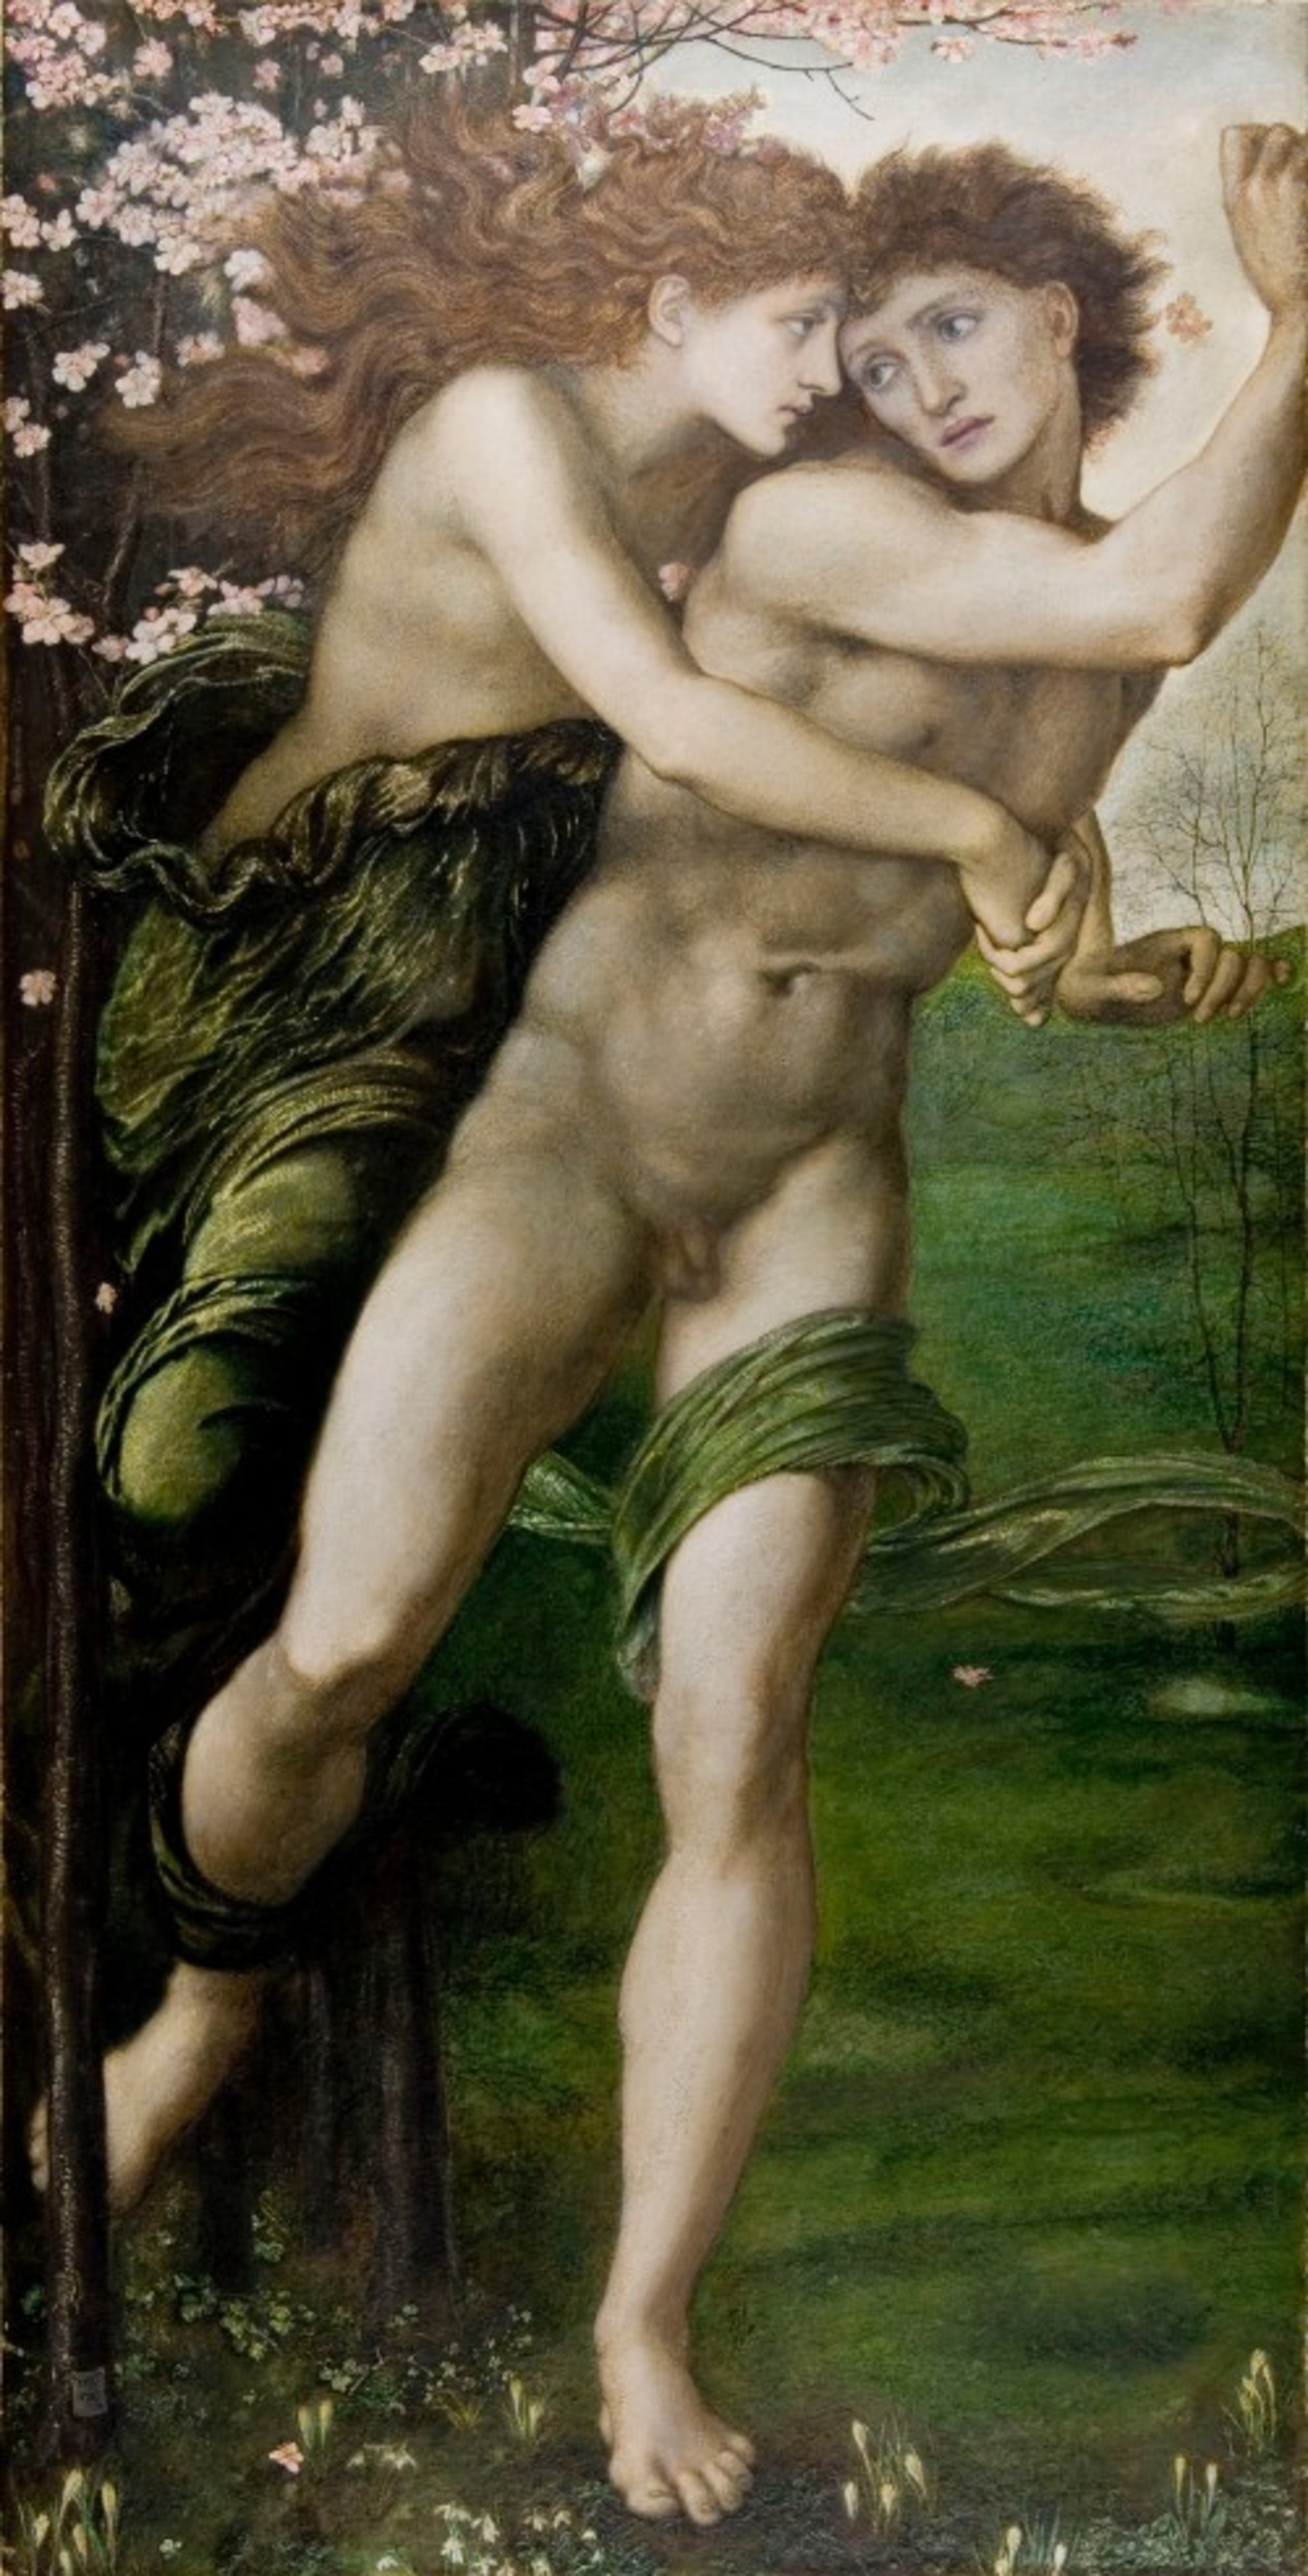 Edward-Burne-Jones---Phyllis-and-Demophoon---Google-Art-Project.jpg